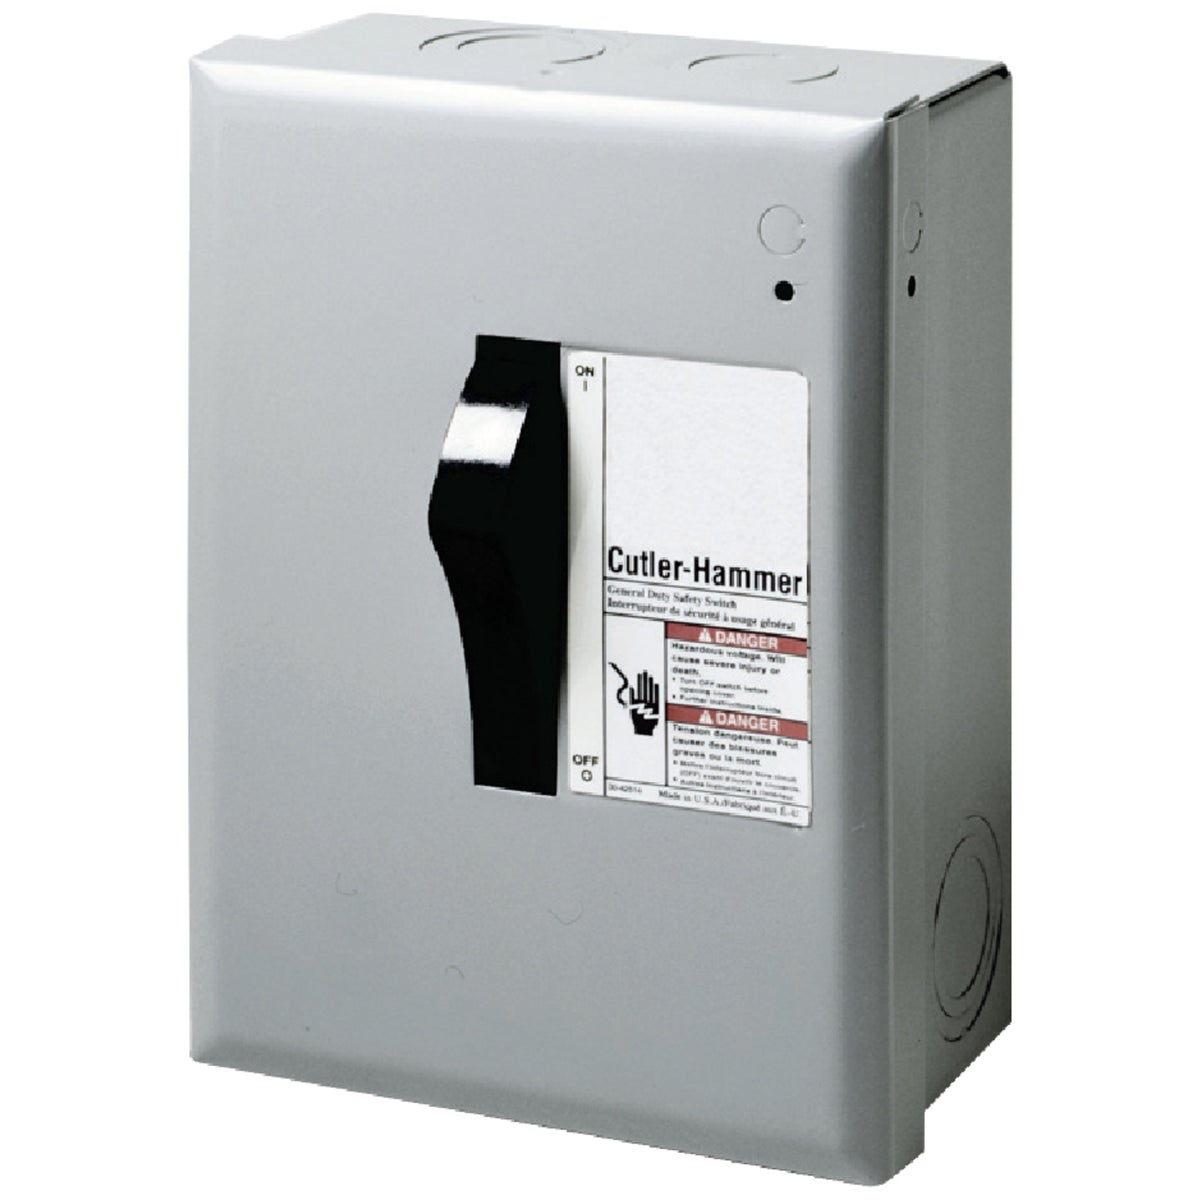 30A SAFETY SWITCH - DP111NGB by Eaton Corporation